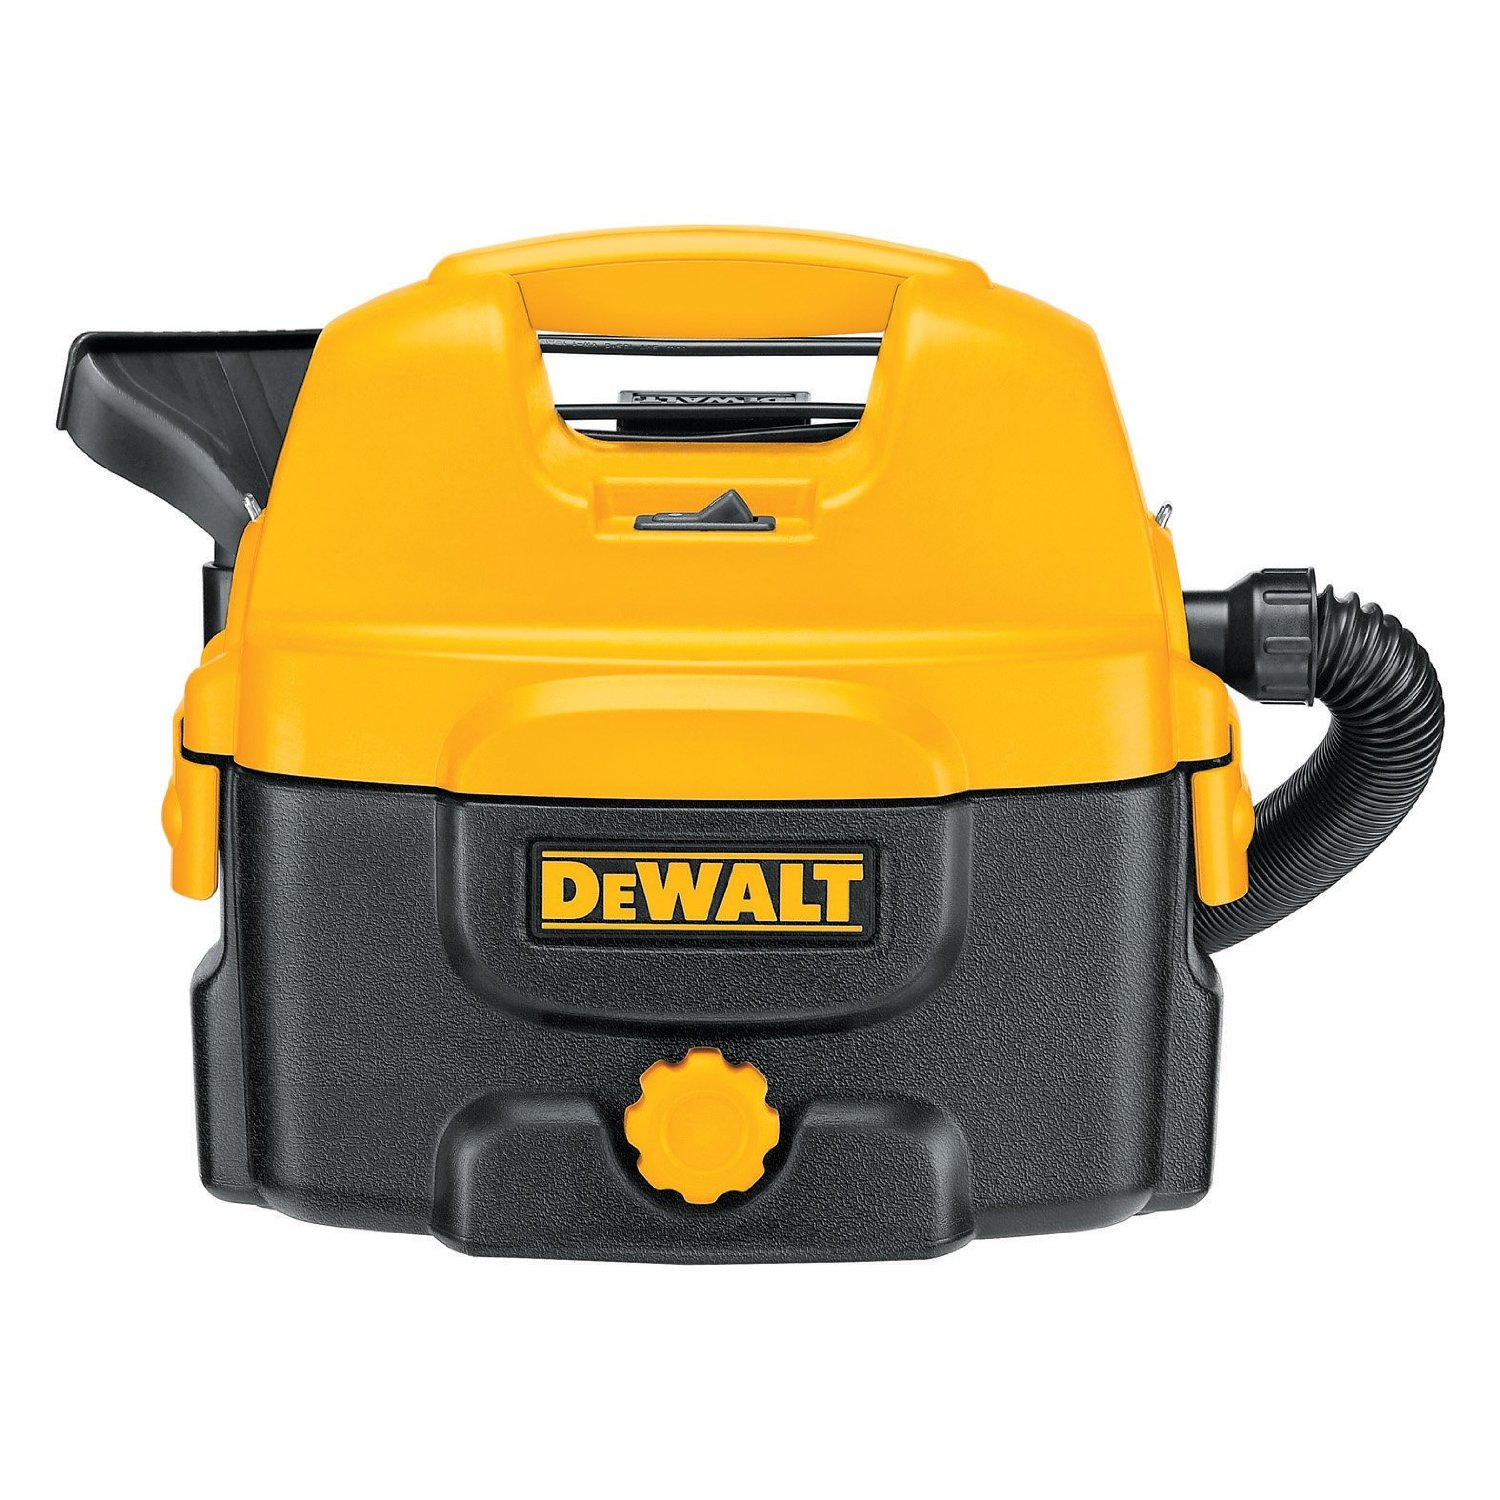 How To Attach Dewalt Chuck moreover Milwaukee 18v Drill Driver together with Airless Paint Sprayer Milwaukee further Dewalt Tools Now At Radioshack In Mt Pleasant together with Dewalt Drills Up To 50 Off. on dewalt 18 volt cordless drill parts